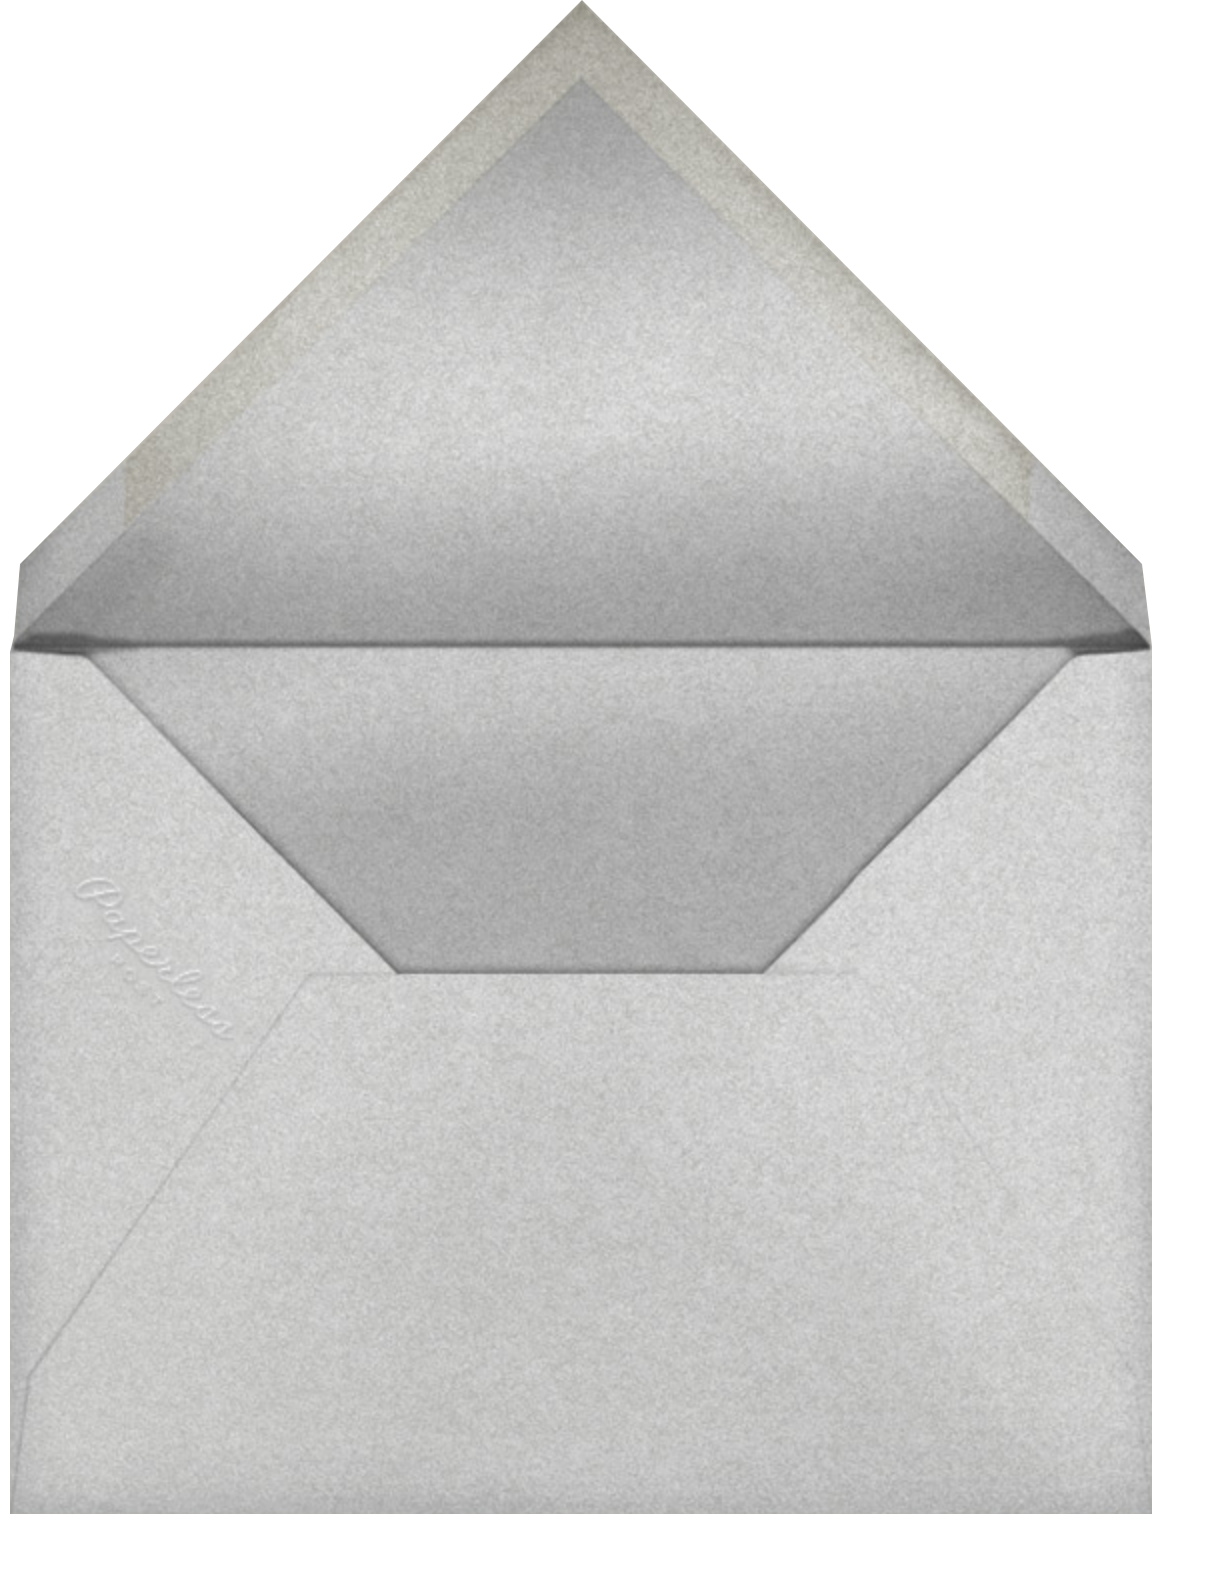 Polar Hangover - Silver - Paperless Post - Cocktail party - envelope back